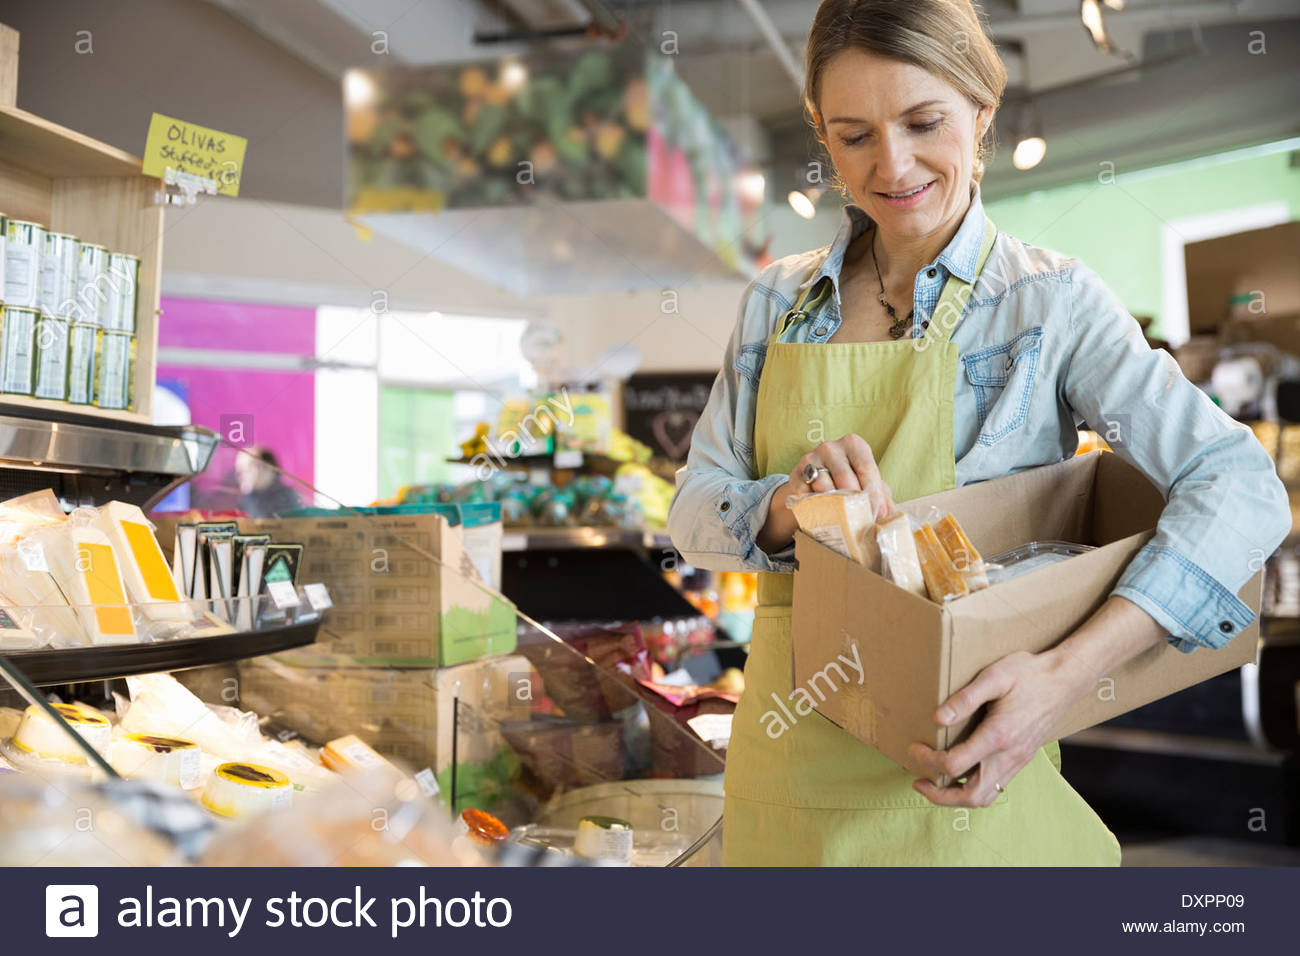 Worker stocking cheese in market - Stock Image